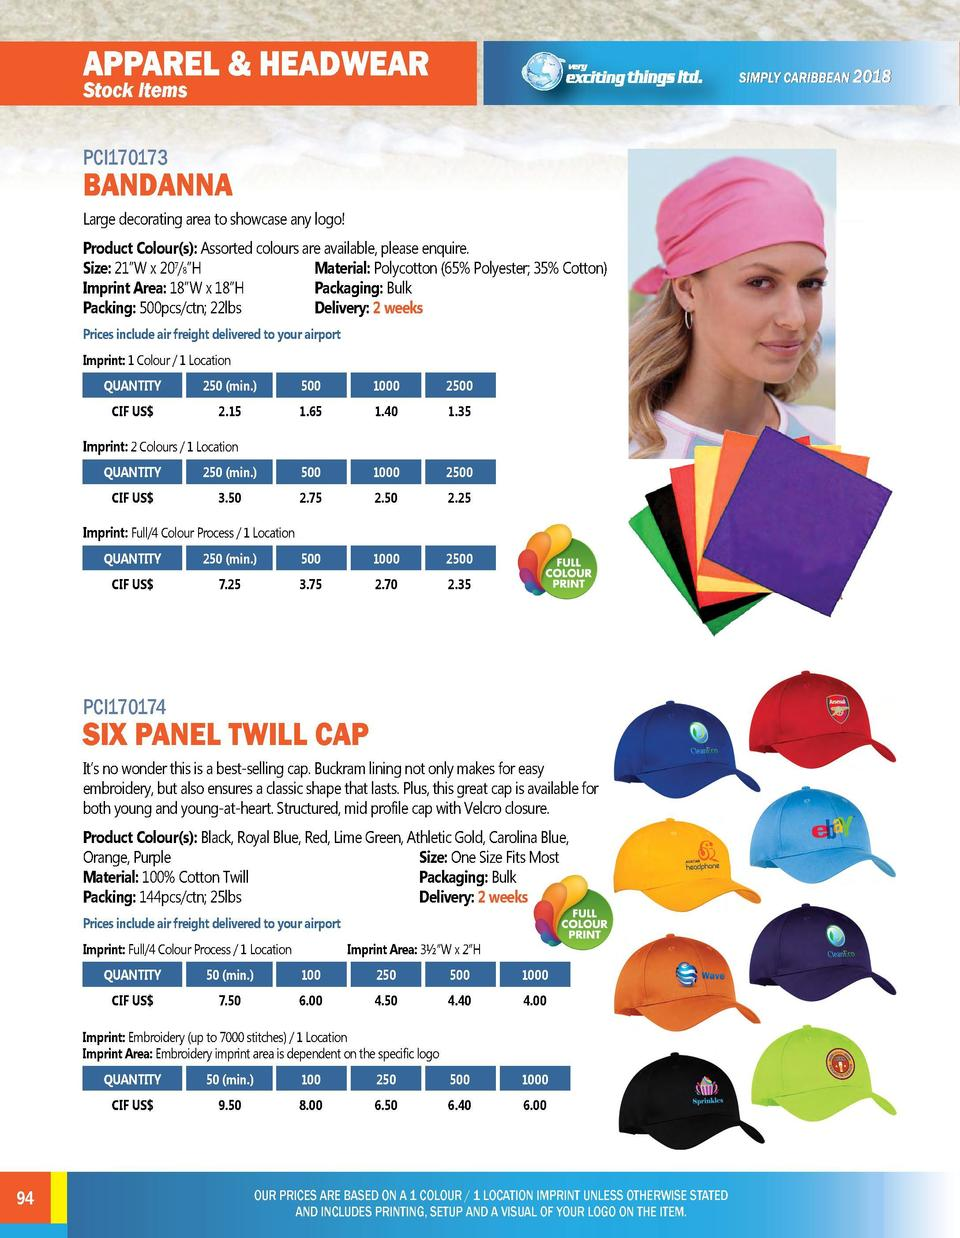 APPAREL   HEADWEAR  APPAREL   HEADWEAR  PCI170173  PCI170175  Large decorating area to showcase any logo   Low profile, 6 ...